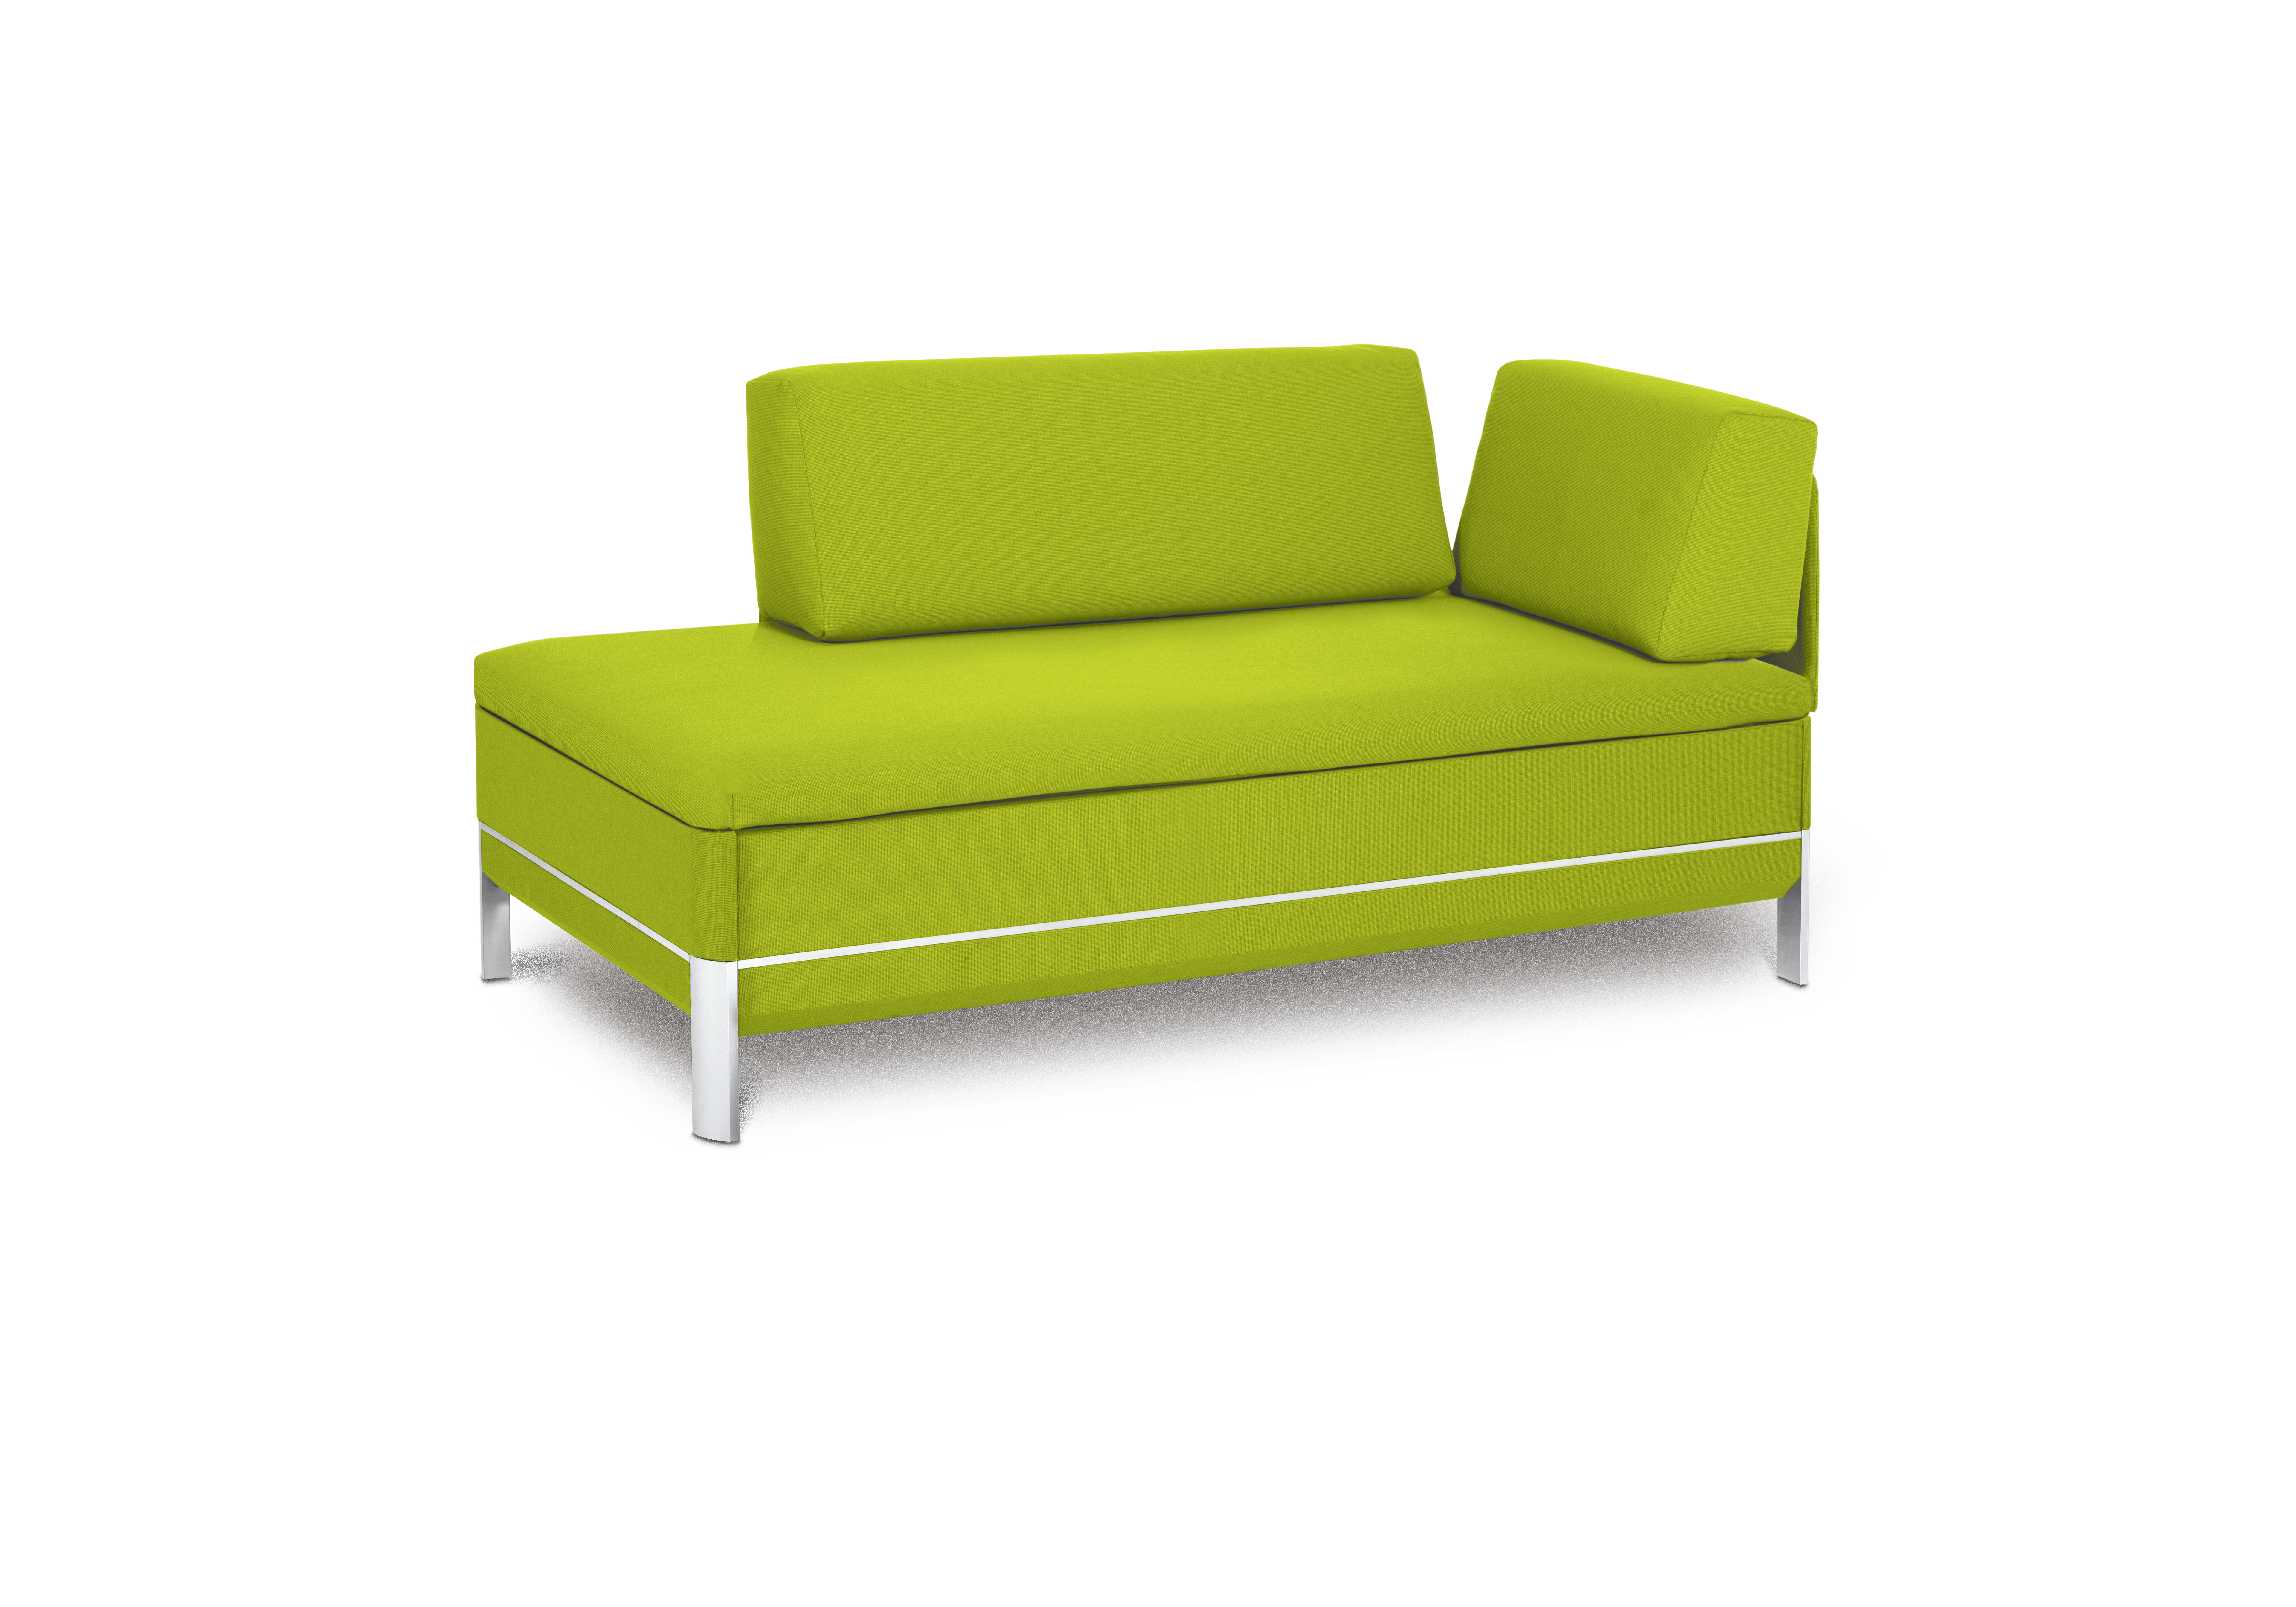 Yellow Möbel Recamiere Image Database Convertible Sofas Designed By Swiss Plus